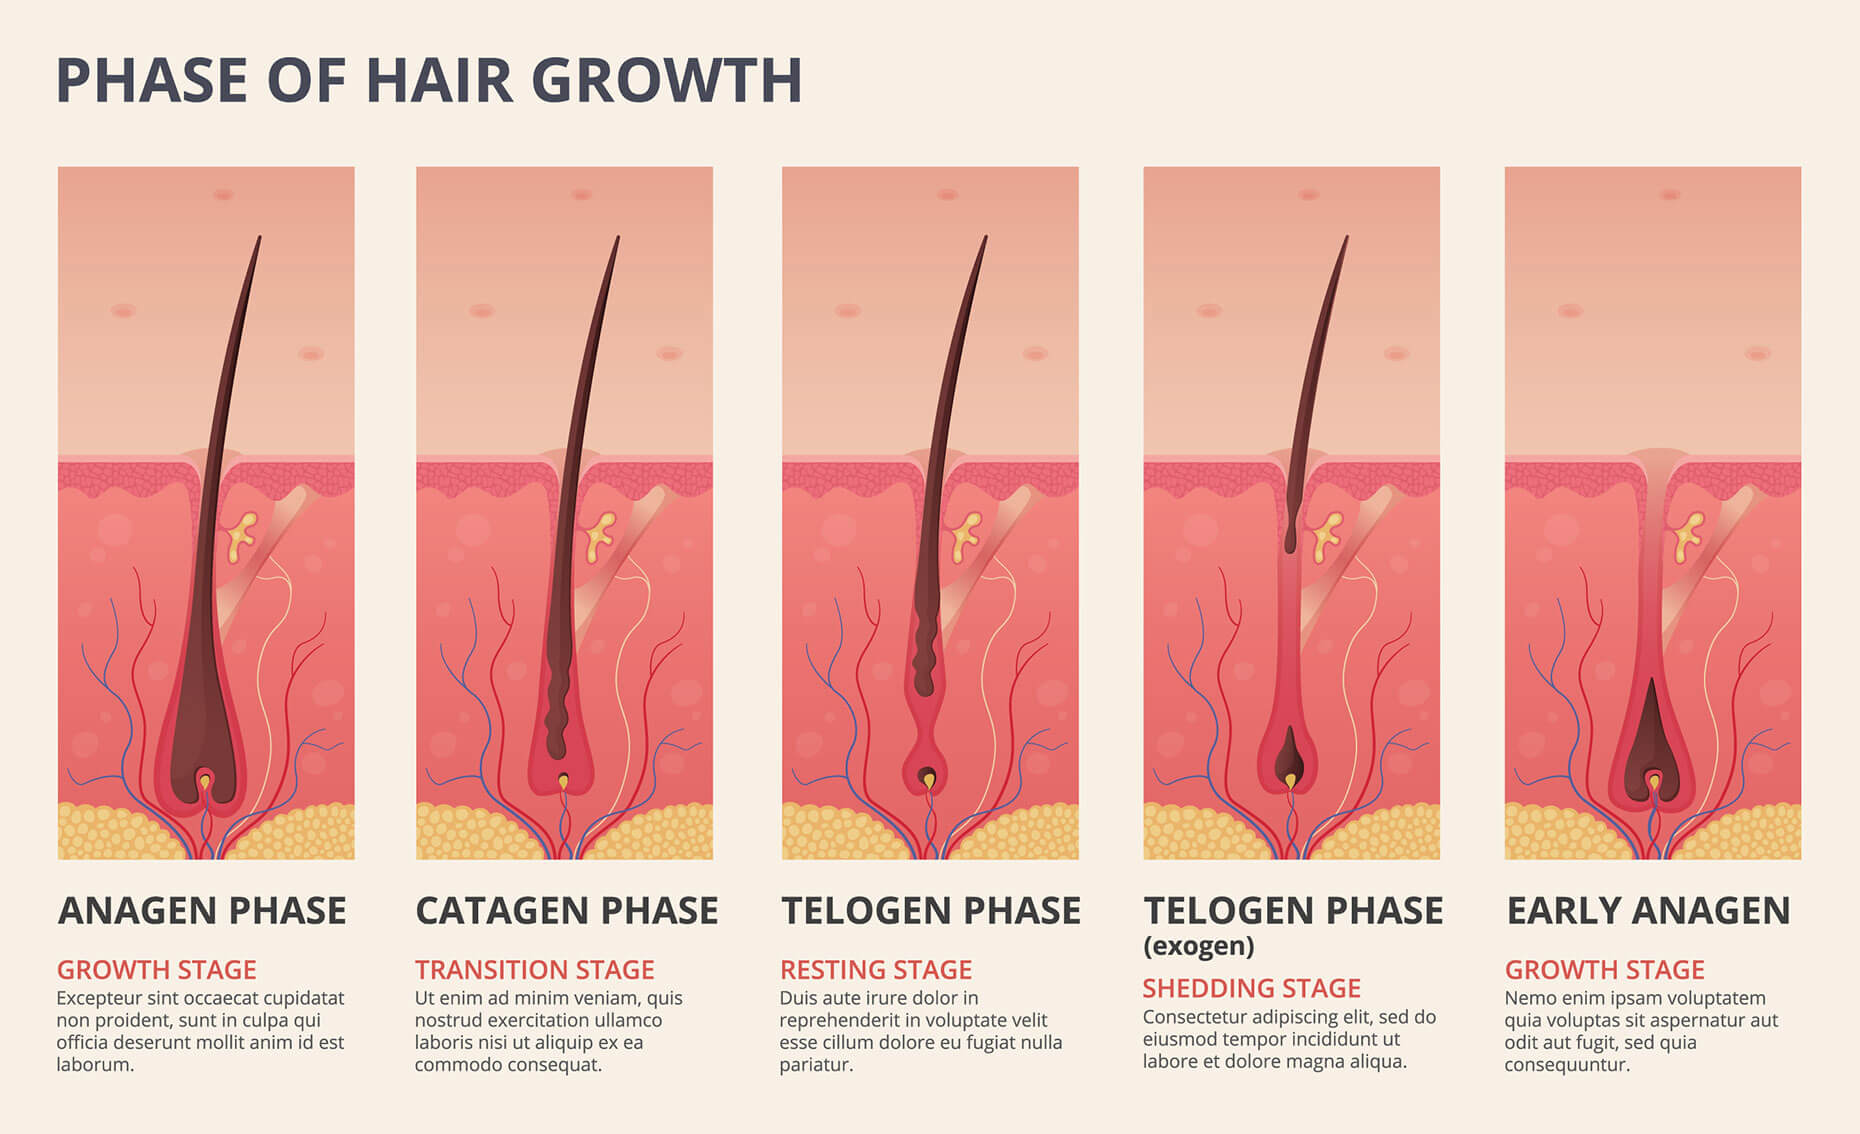 A diagram of the hair growth cycle, depicting the growing, transition, resting, and shedding phases